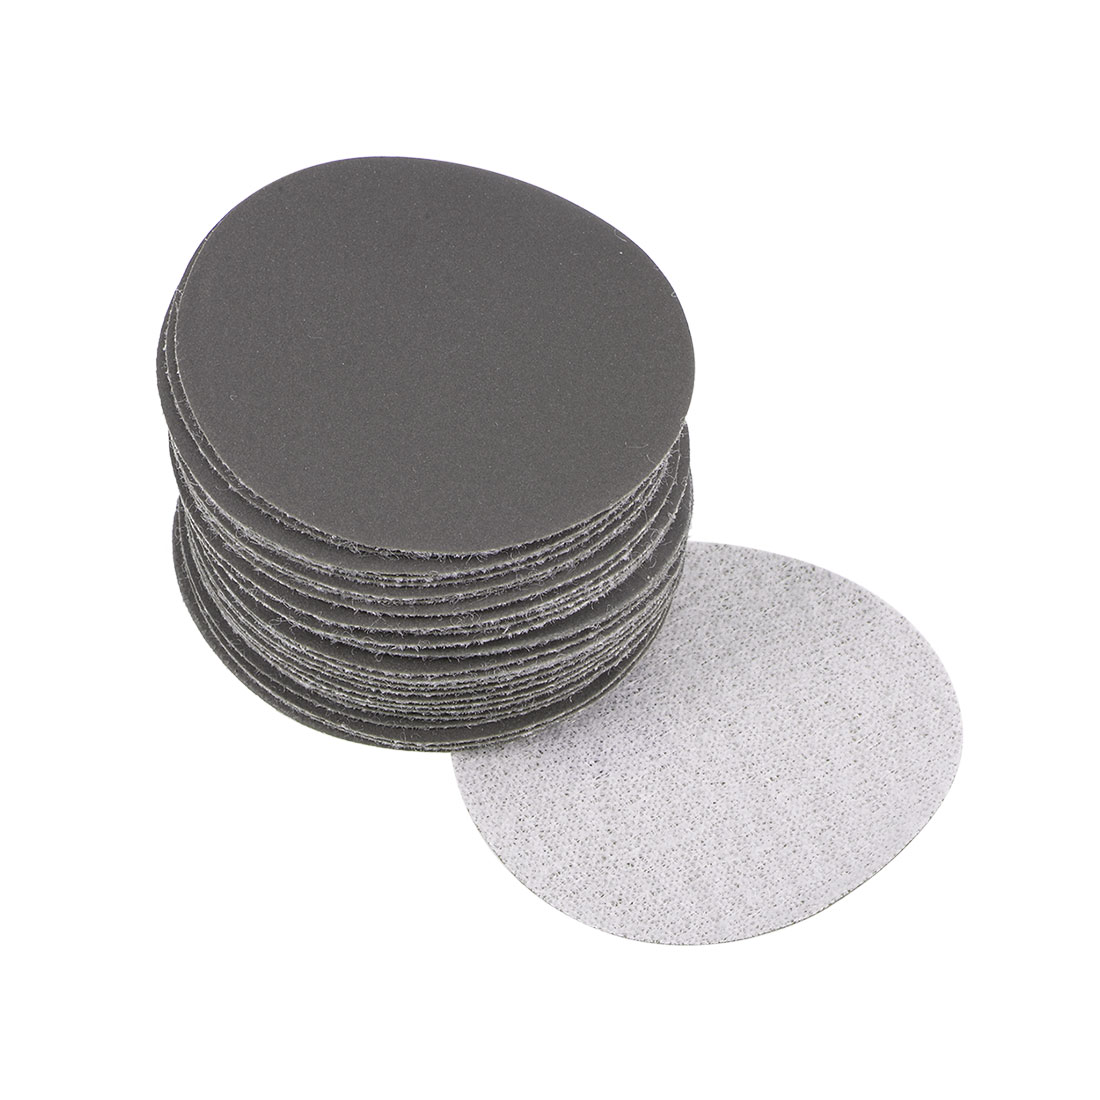 2 inch Wet Dry Discs 1000 Grit Hook and Loop Sanding Disc Silicon Carbide 30pcs